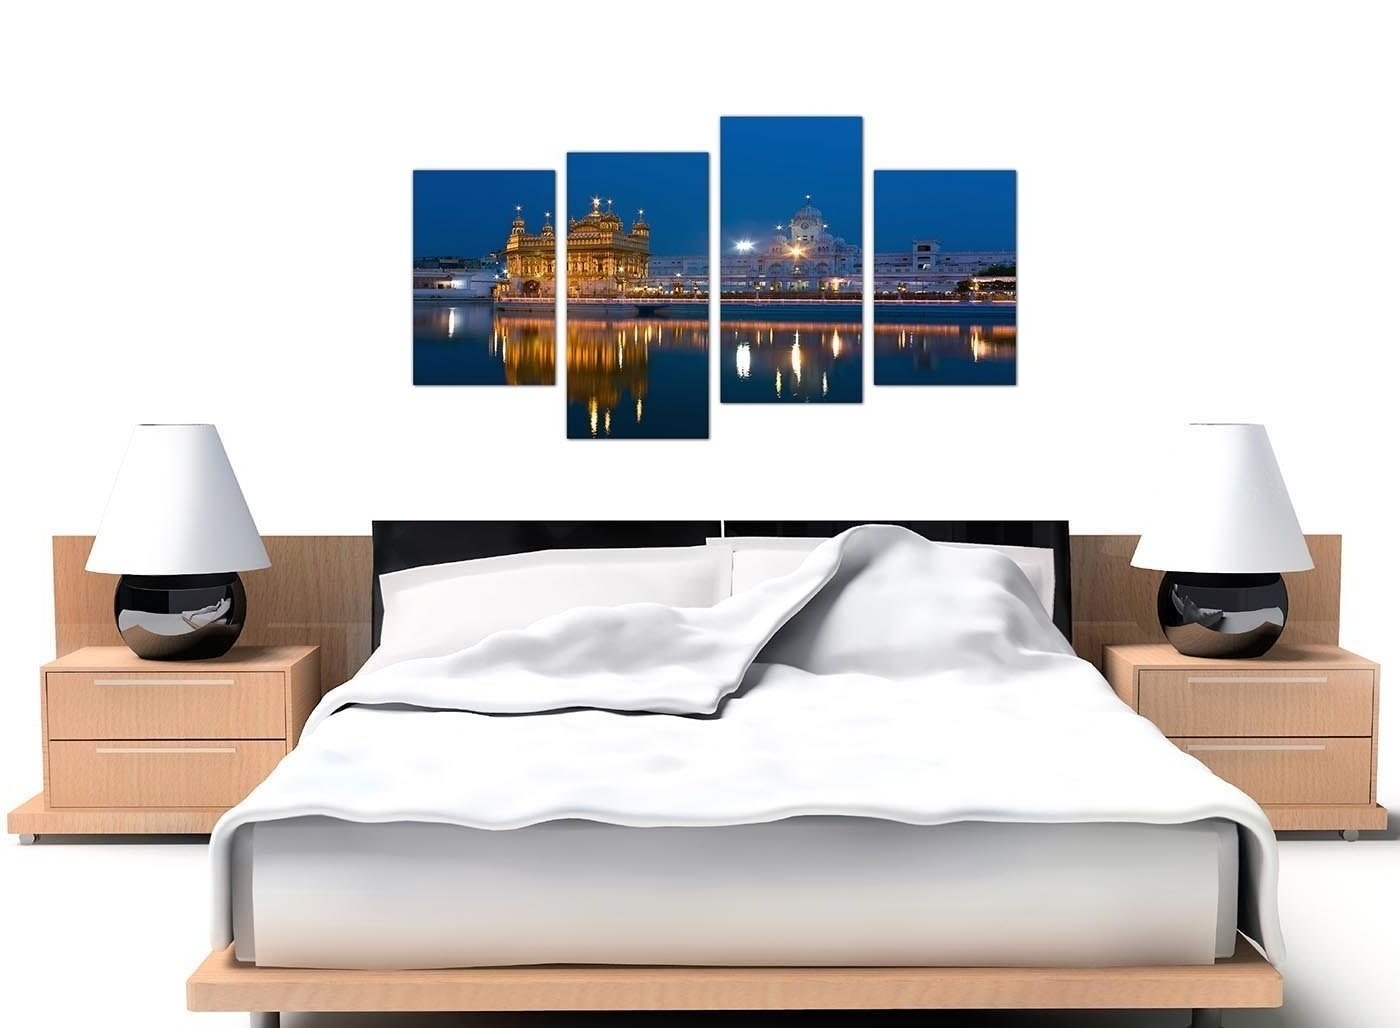 Amazon: Large Sikh Canvas Wall Art Pictures Of The Golden Intended For Popular Bedroom Canvas Wall Art (View 3 of 15)